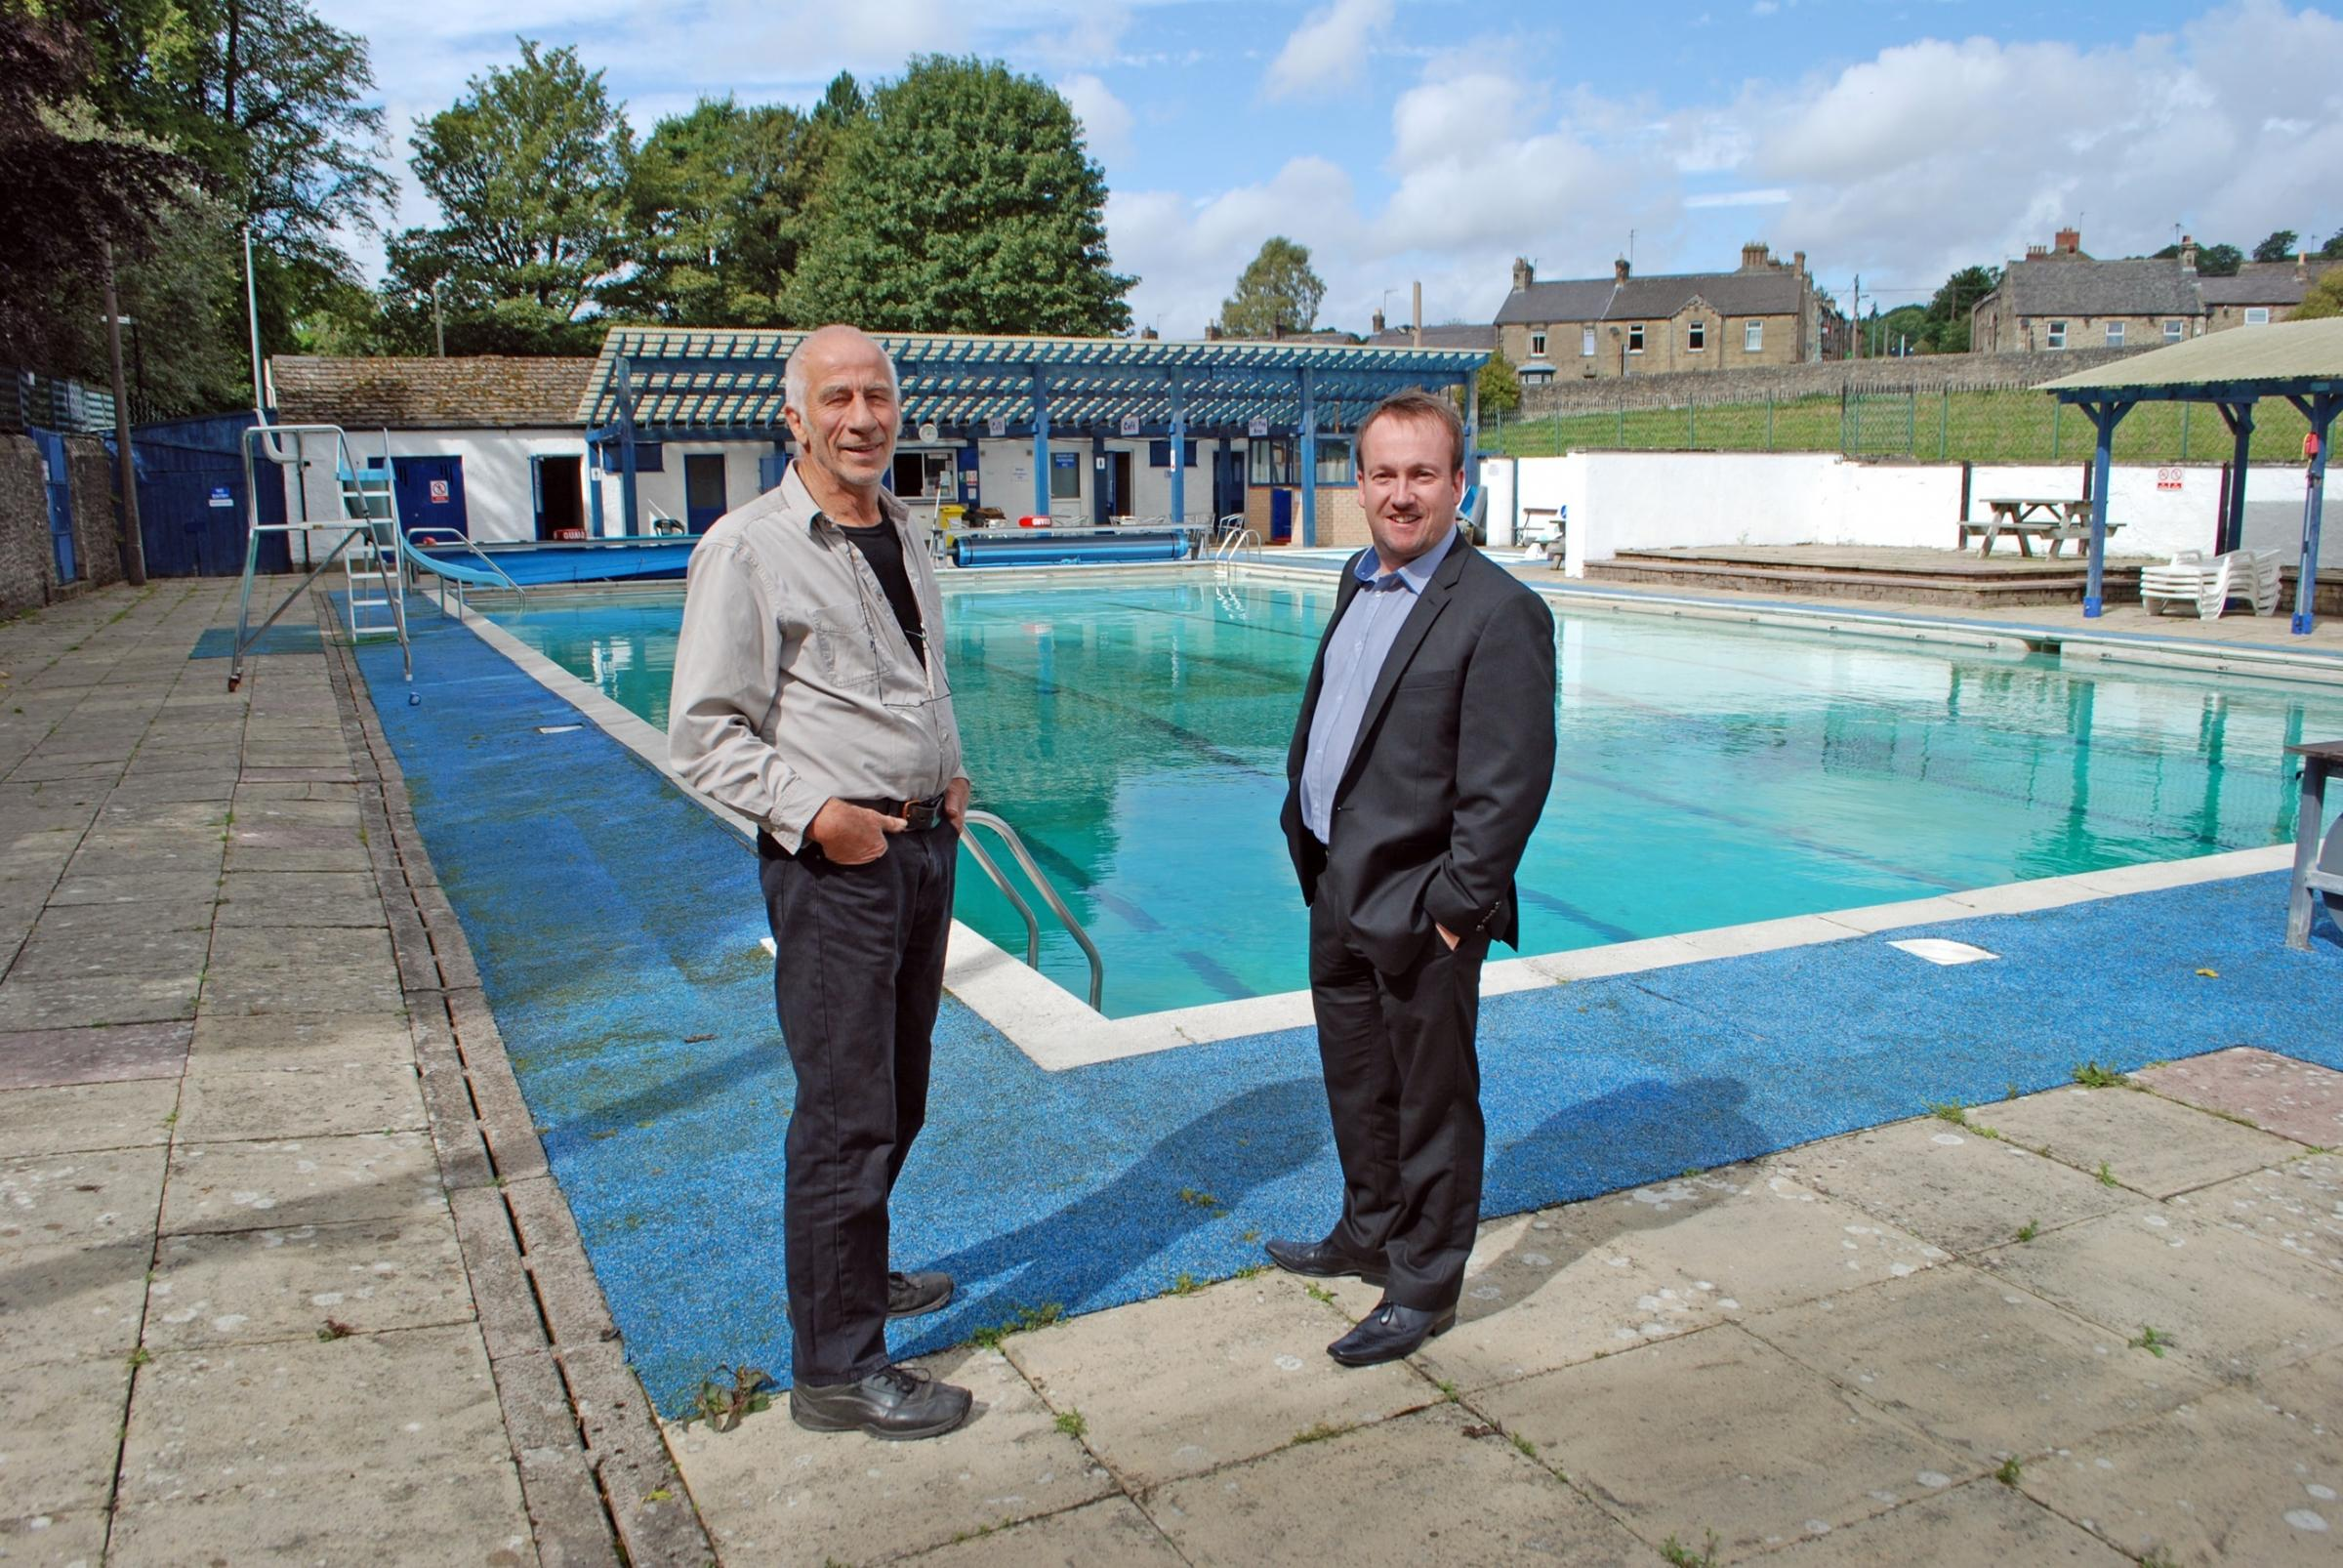 HEATING HOPES: (L to R) Peter Thompson, chairman of Stanhope Pool Ltd, with Chris Cassells, managing director of Opus Green, at Weardale Open Air Pool